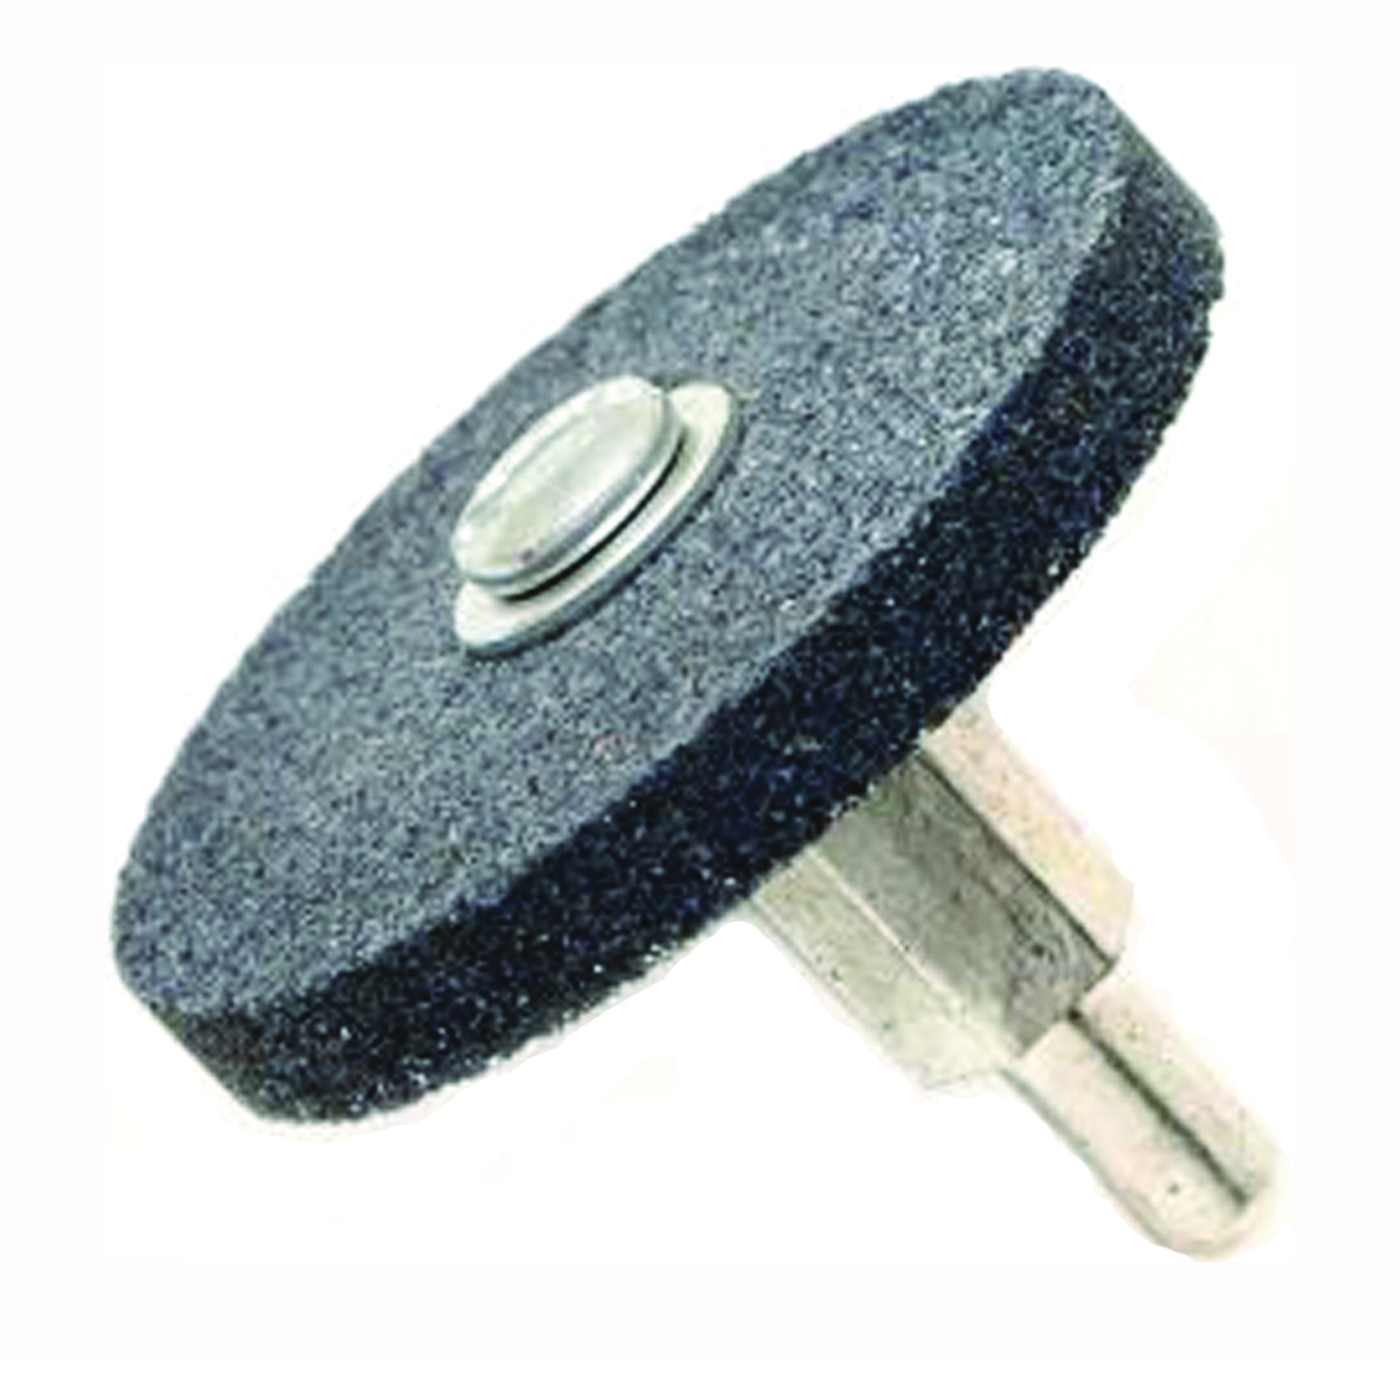 Picture of Forney 60052 Grinding Wheel, 1/4 x 2 in Dia, 1/4 in Arbor/Shank, 60 Grit, Aluminum Oxide Abrasive